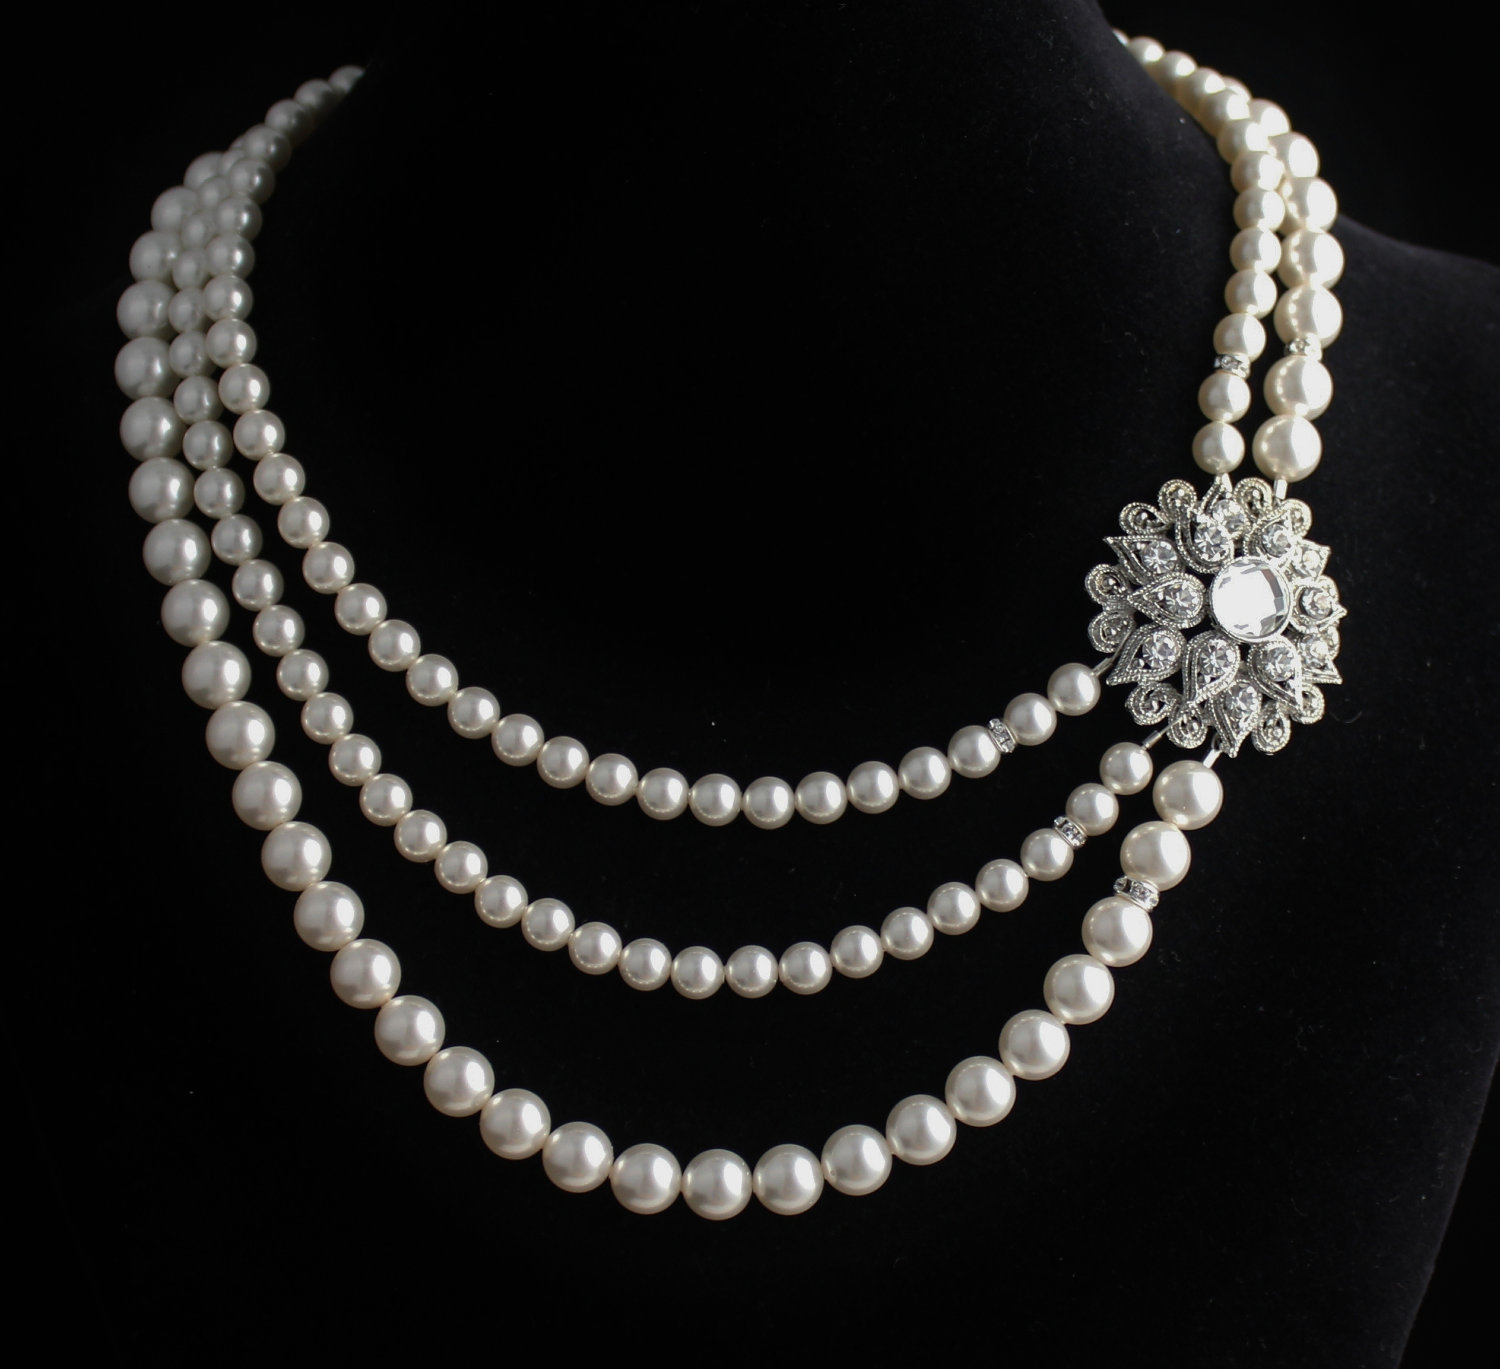 Top 6 pearl jewelry designs for unique elegance live enhanced source pearl necklaces aloadofball Choice Image